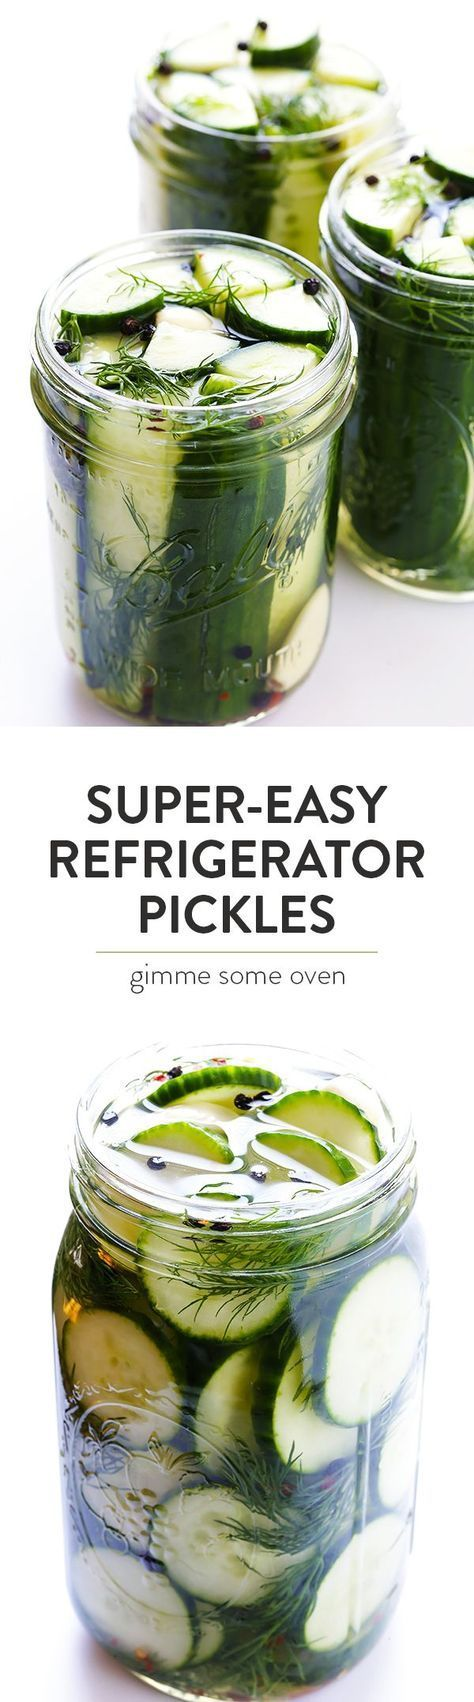 This Easy Refrigerator Pickles recipe only takes about 5 minutes to prep, and makes perfectly crisp and delicious pickles that you'll LOVE! | (Vegan / Gluten-Free)